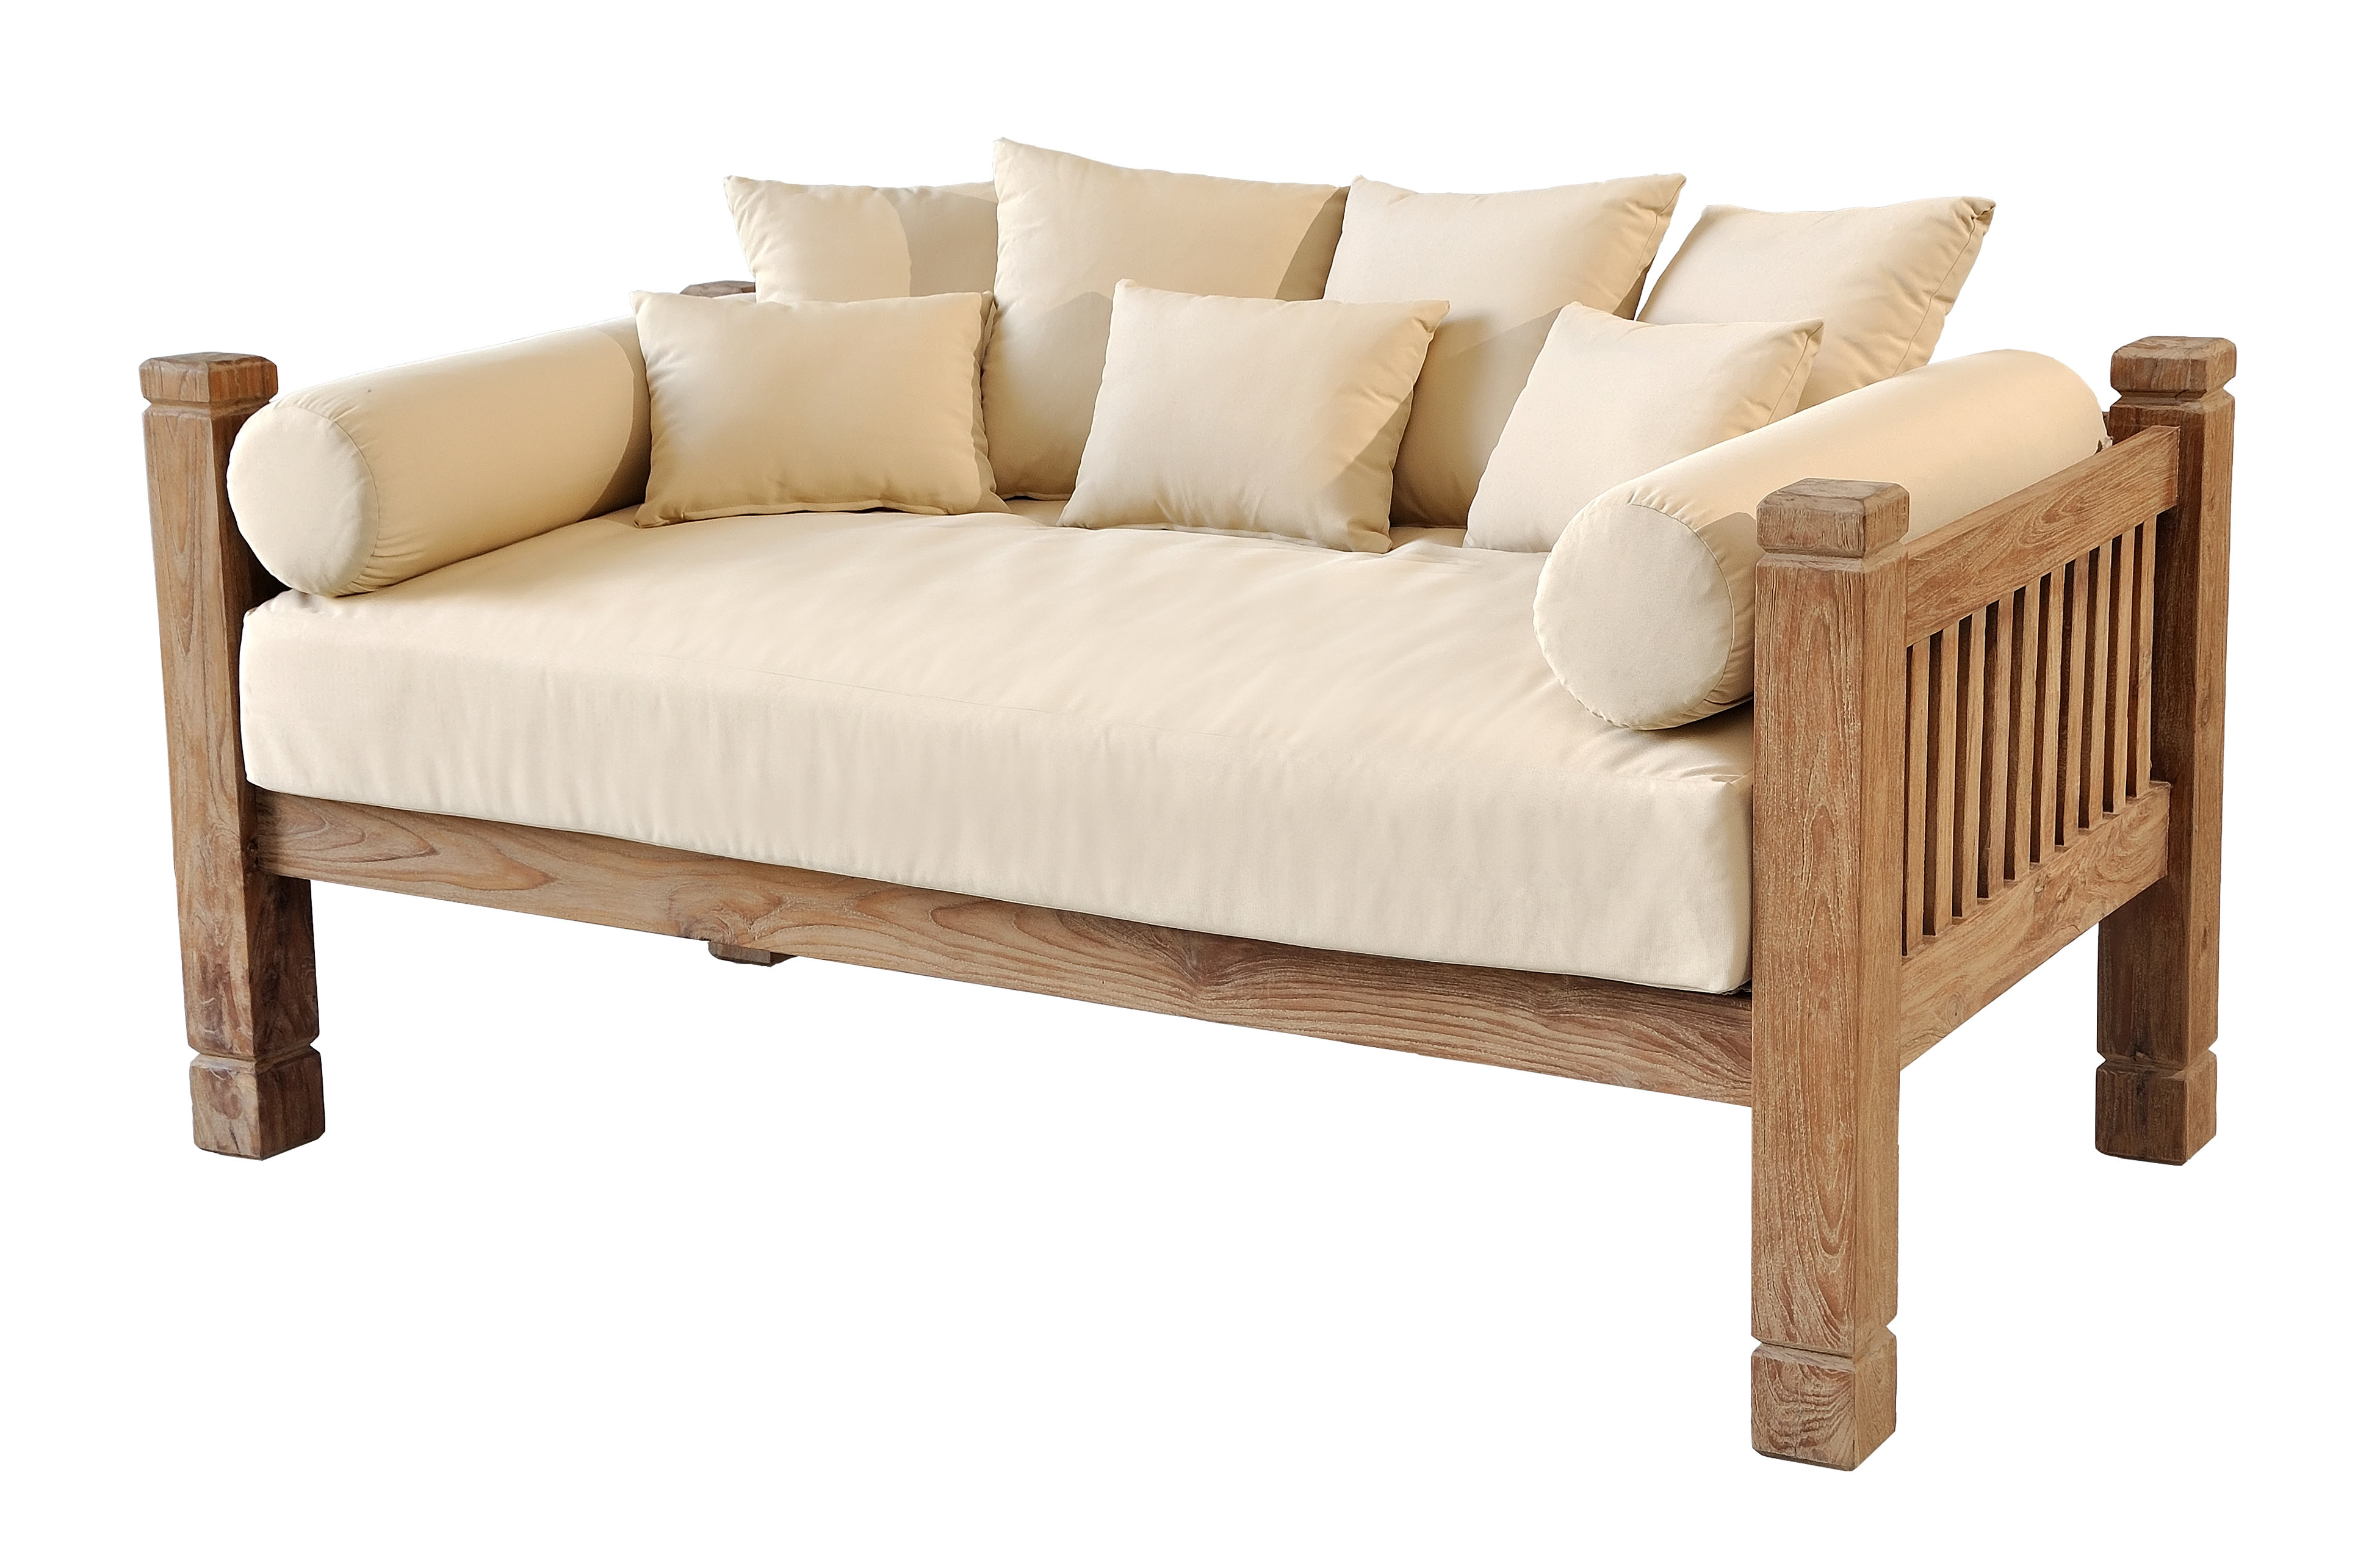 Most Recently Released Ellanti Teak Patio Daybeds With Cushions Regarding Perine Teak Patio Daybed With Cushions (View 12 of 20)